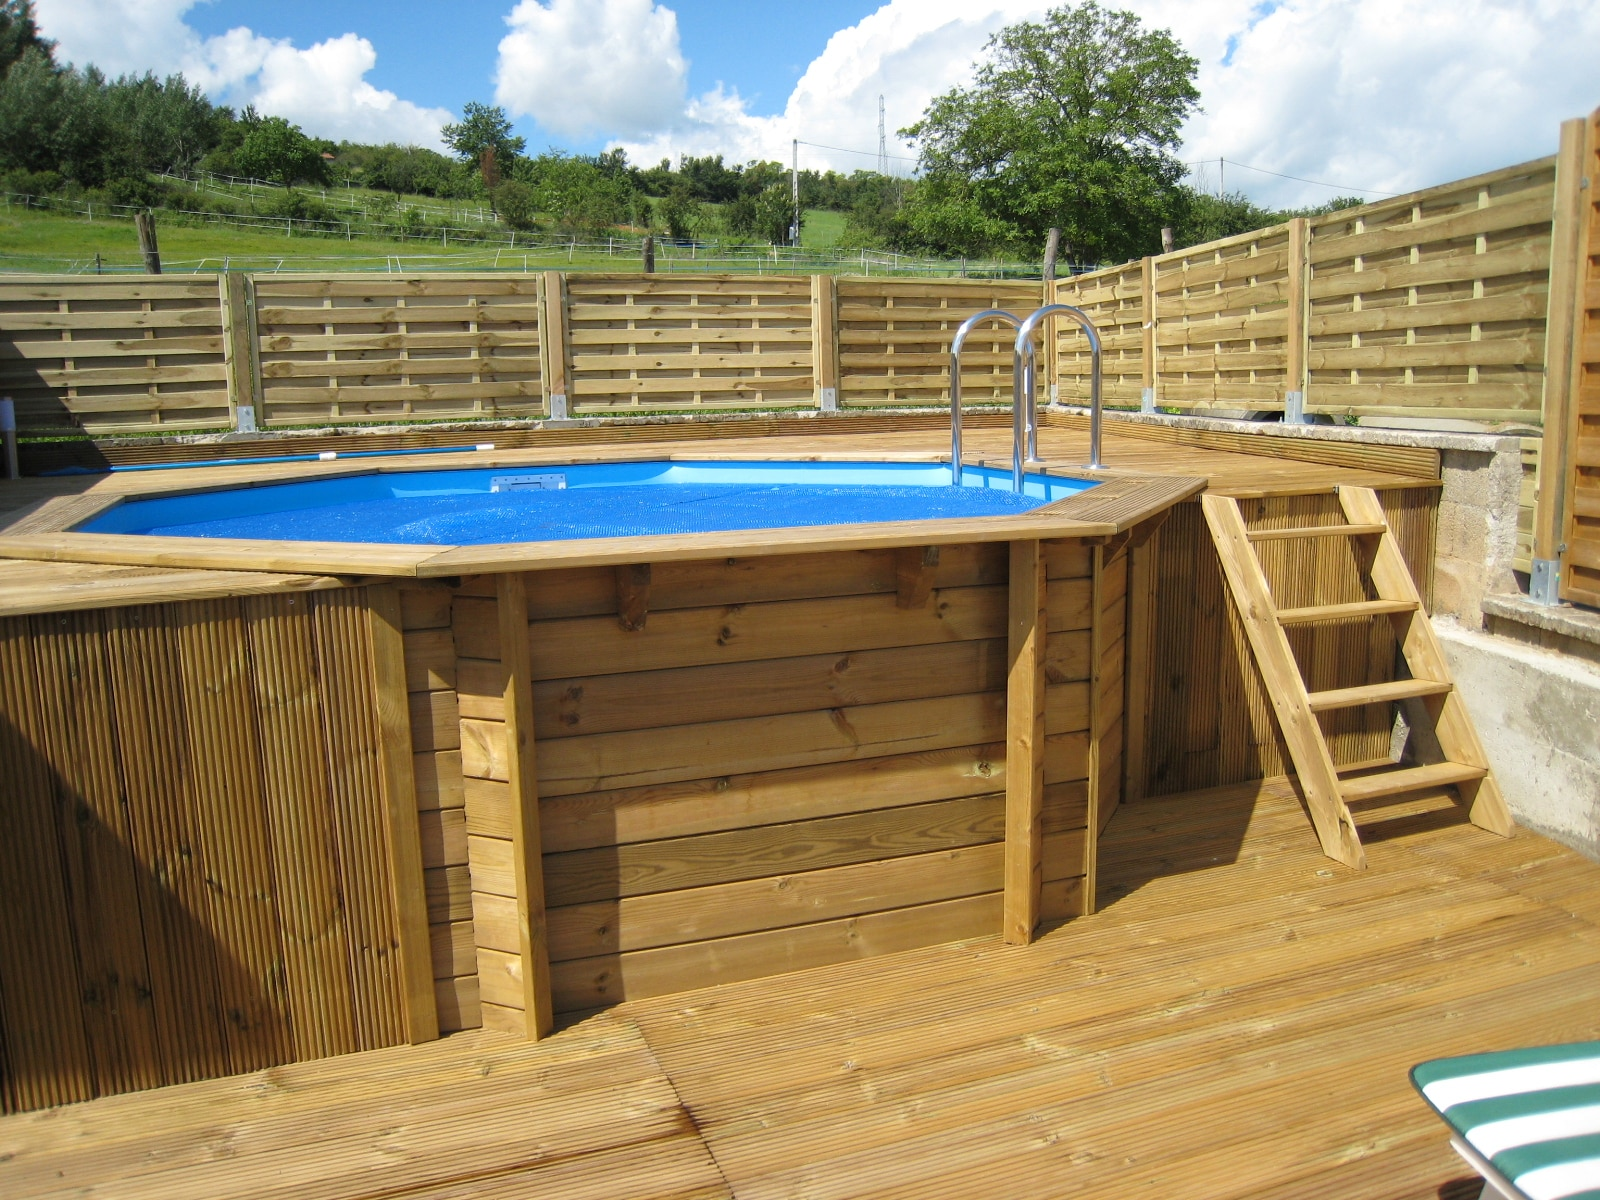 Comment monter une piscine en bois for Piscine en kit bois